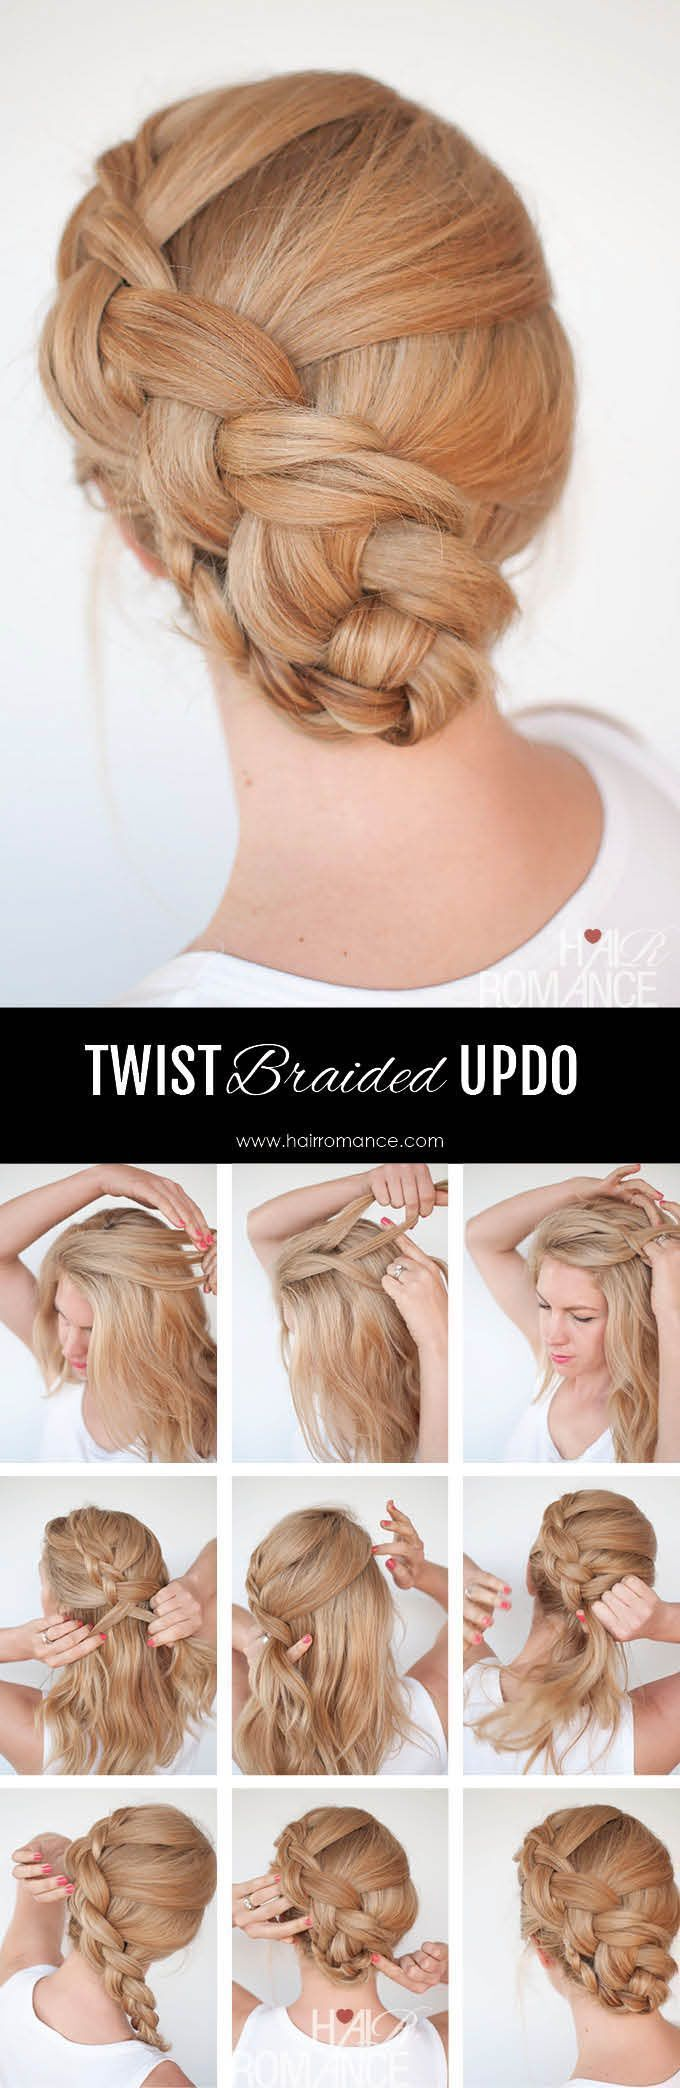 Nuevo tutorial de peinado de trenza – the twist braid updo – Neu Mode Frisuren